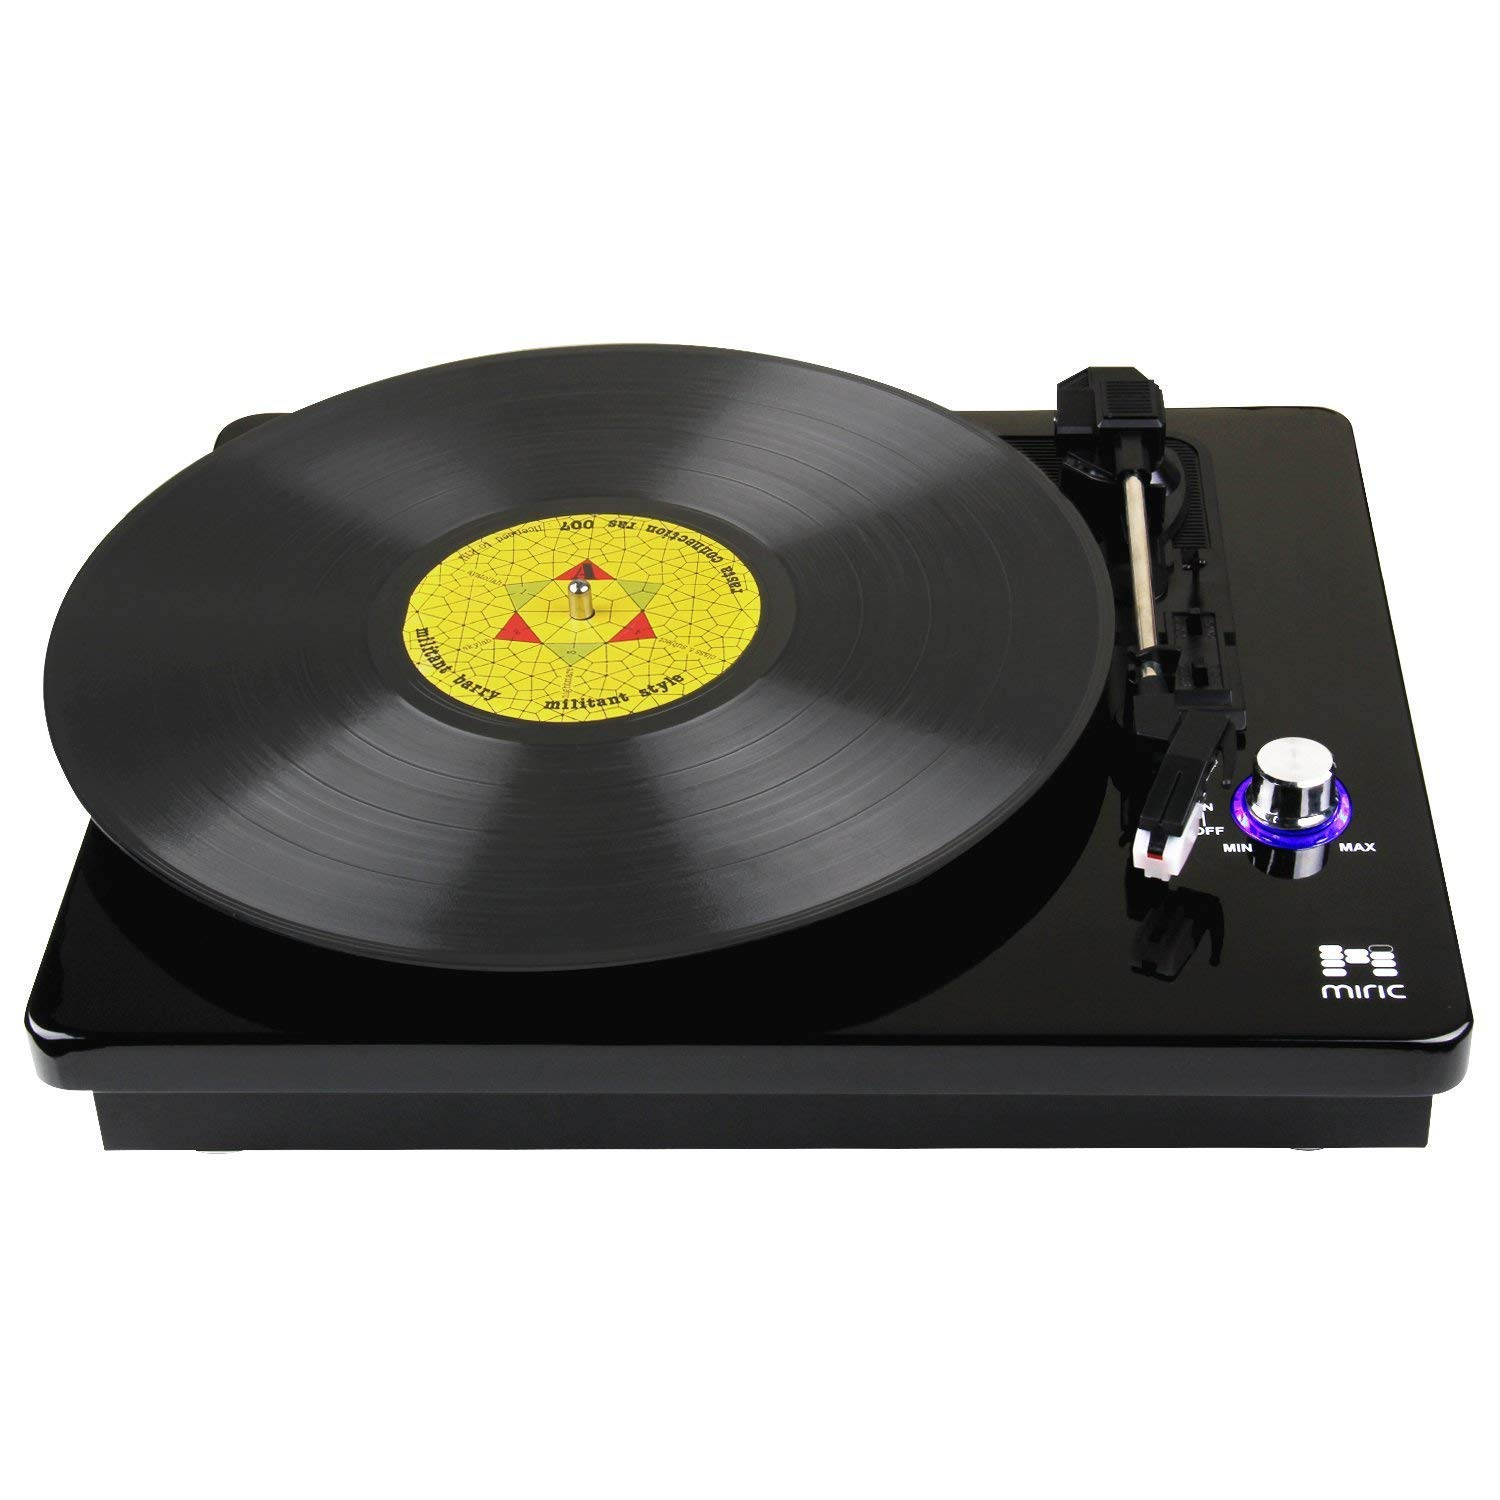 Bluetooth Turntable, Miric Record Player with 2 Built-in Speakers